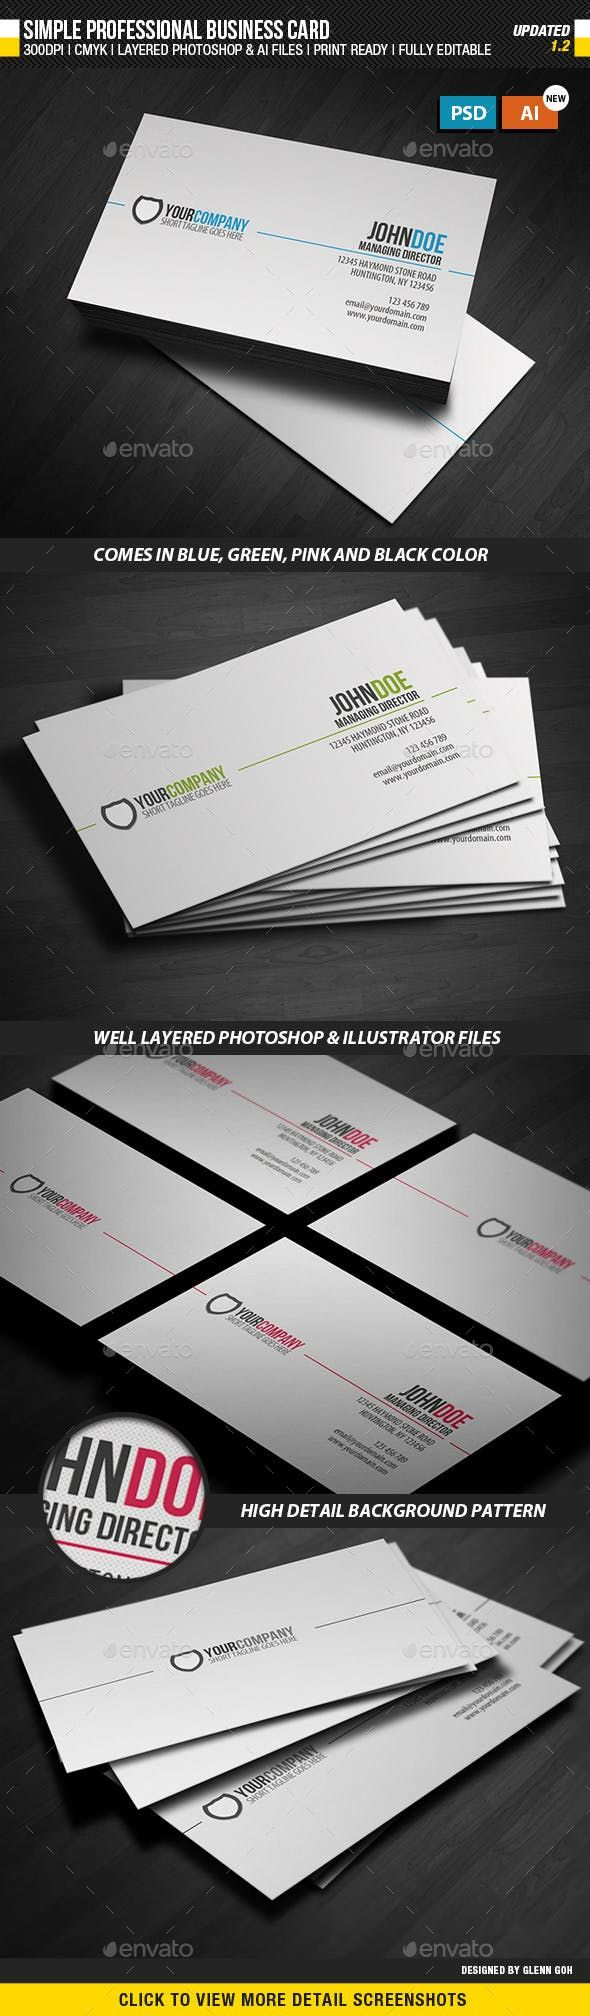 Simple Professional Business Card Business Card Template Design Business Cards Simple Cool Business Cards